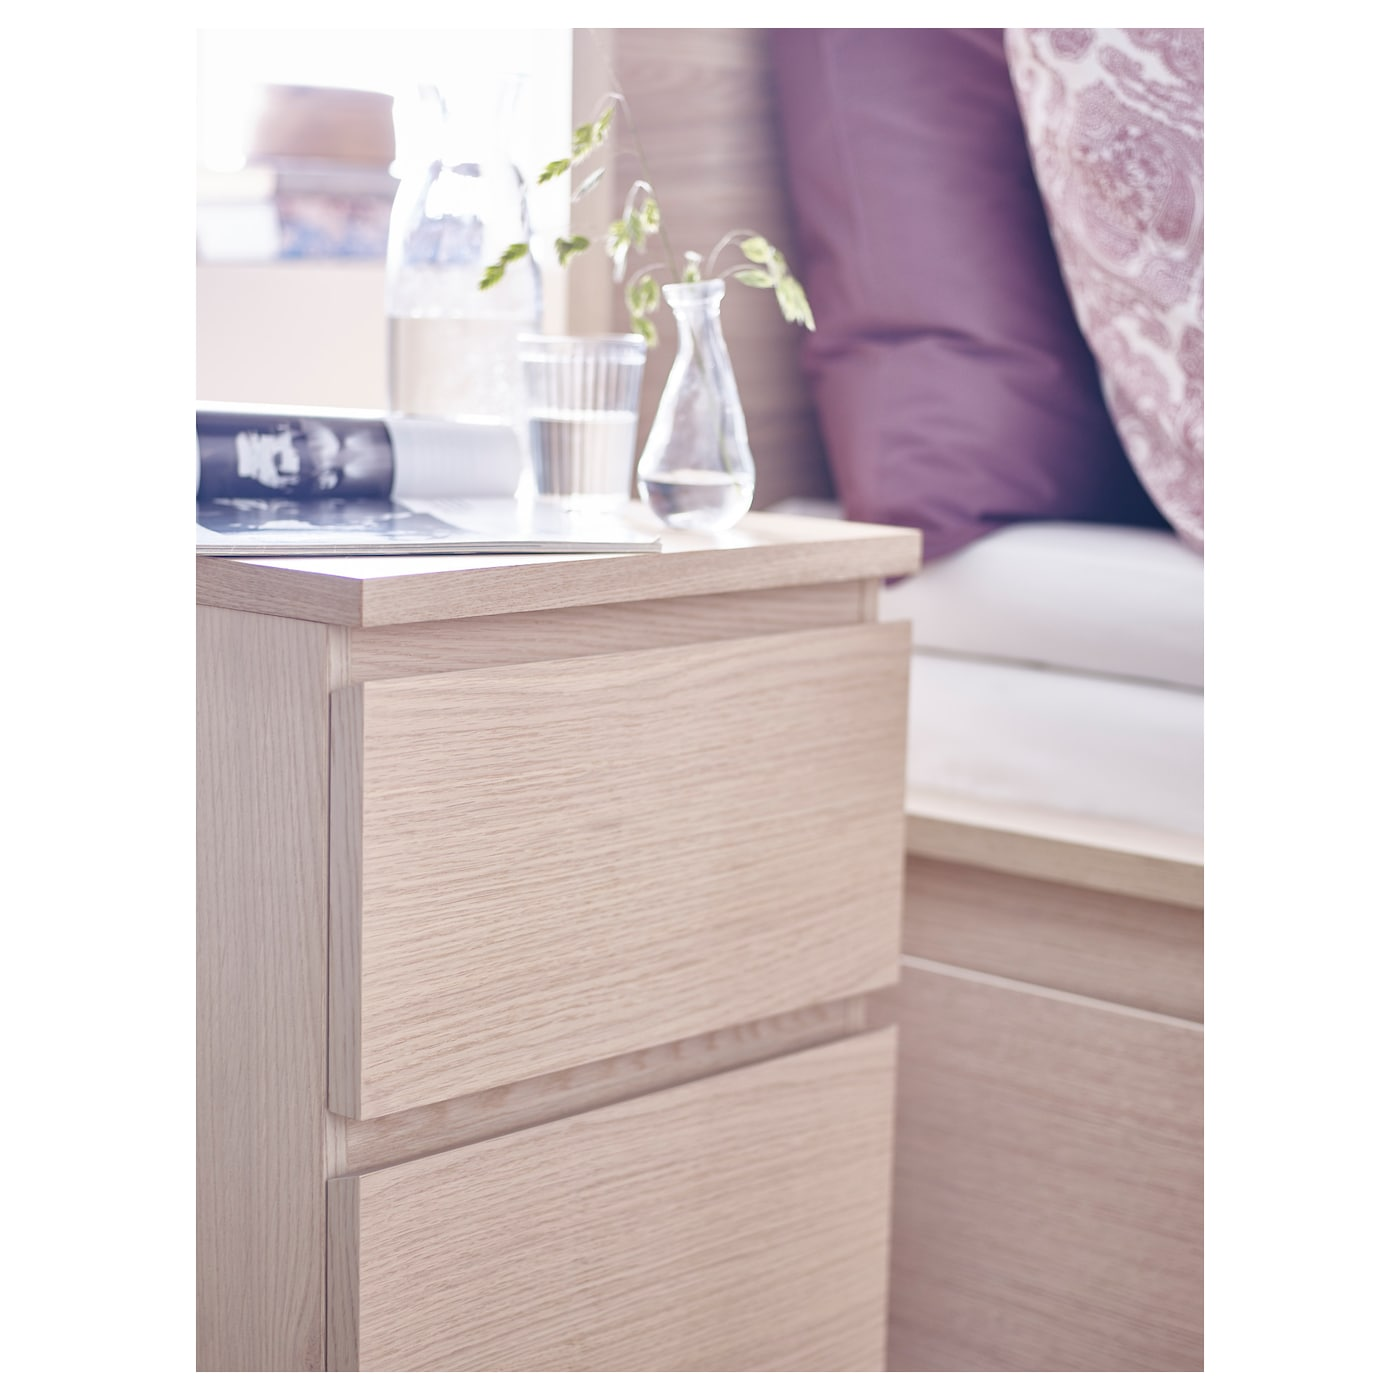 malm chest of 2 drawers white stained oak veneer 40x55 cm - ikea